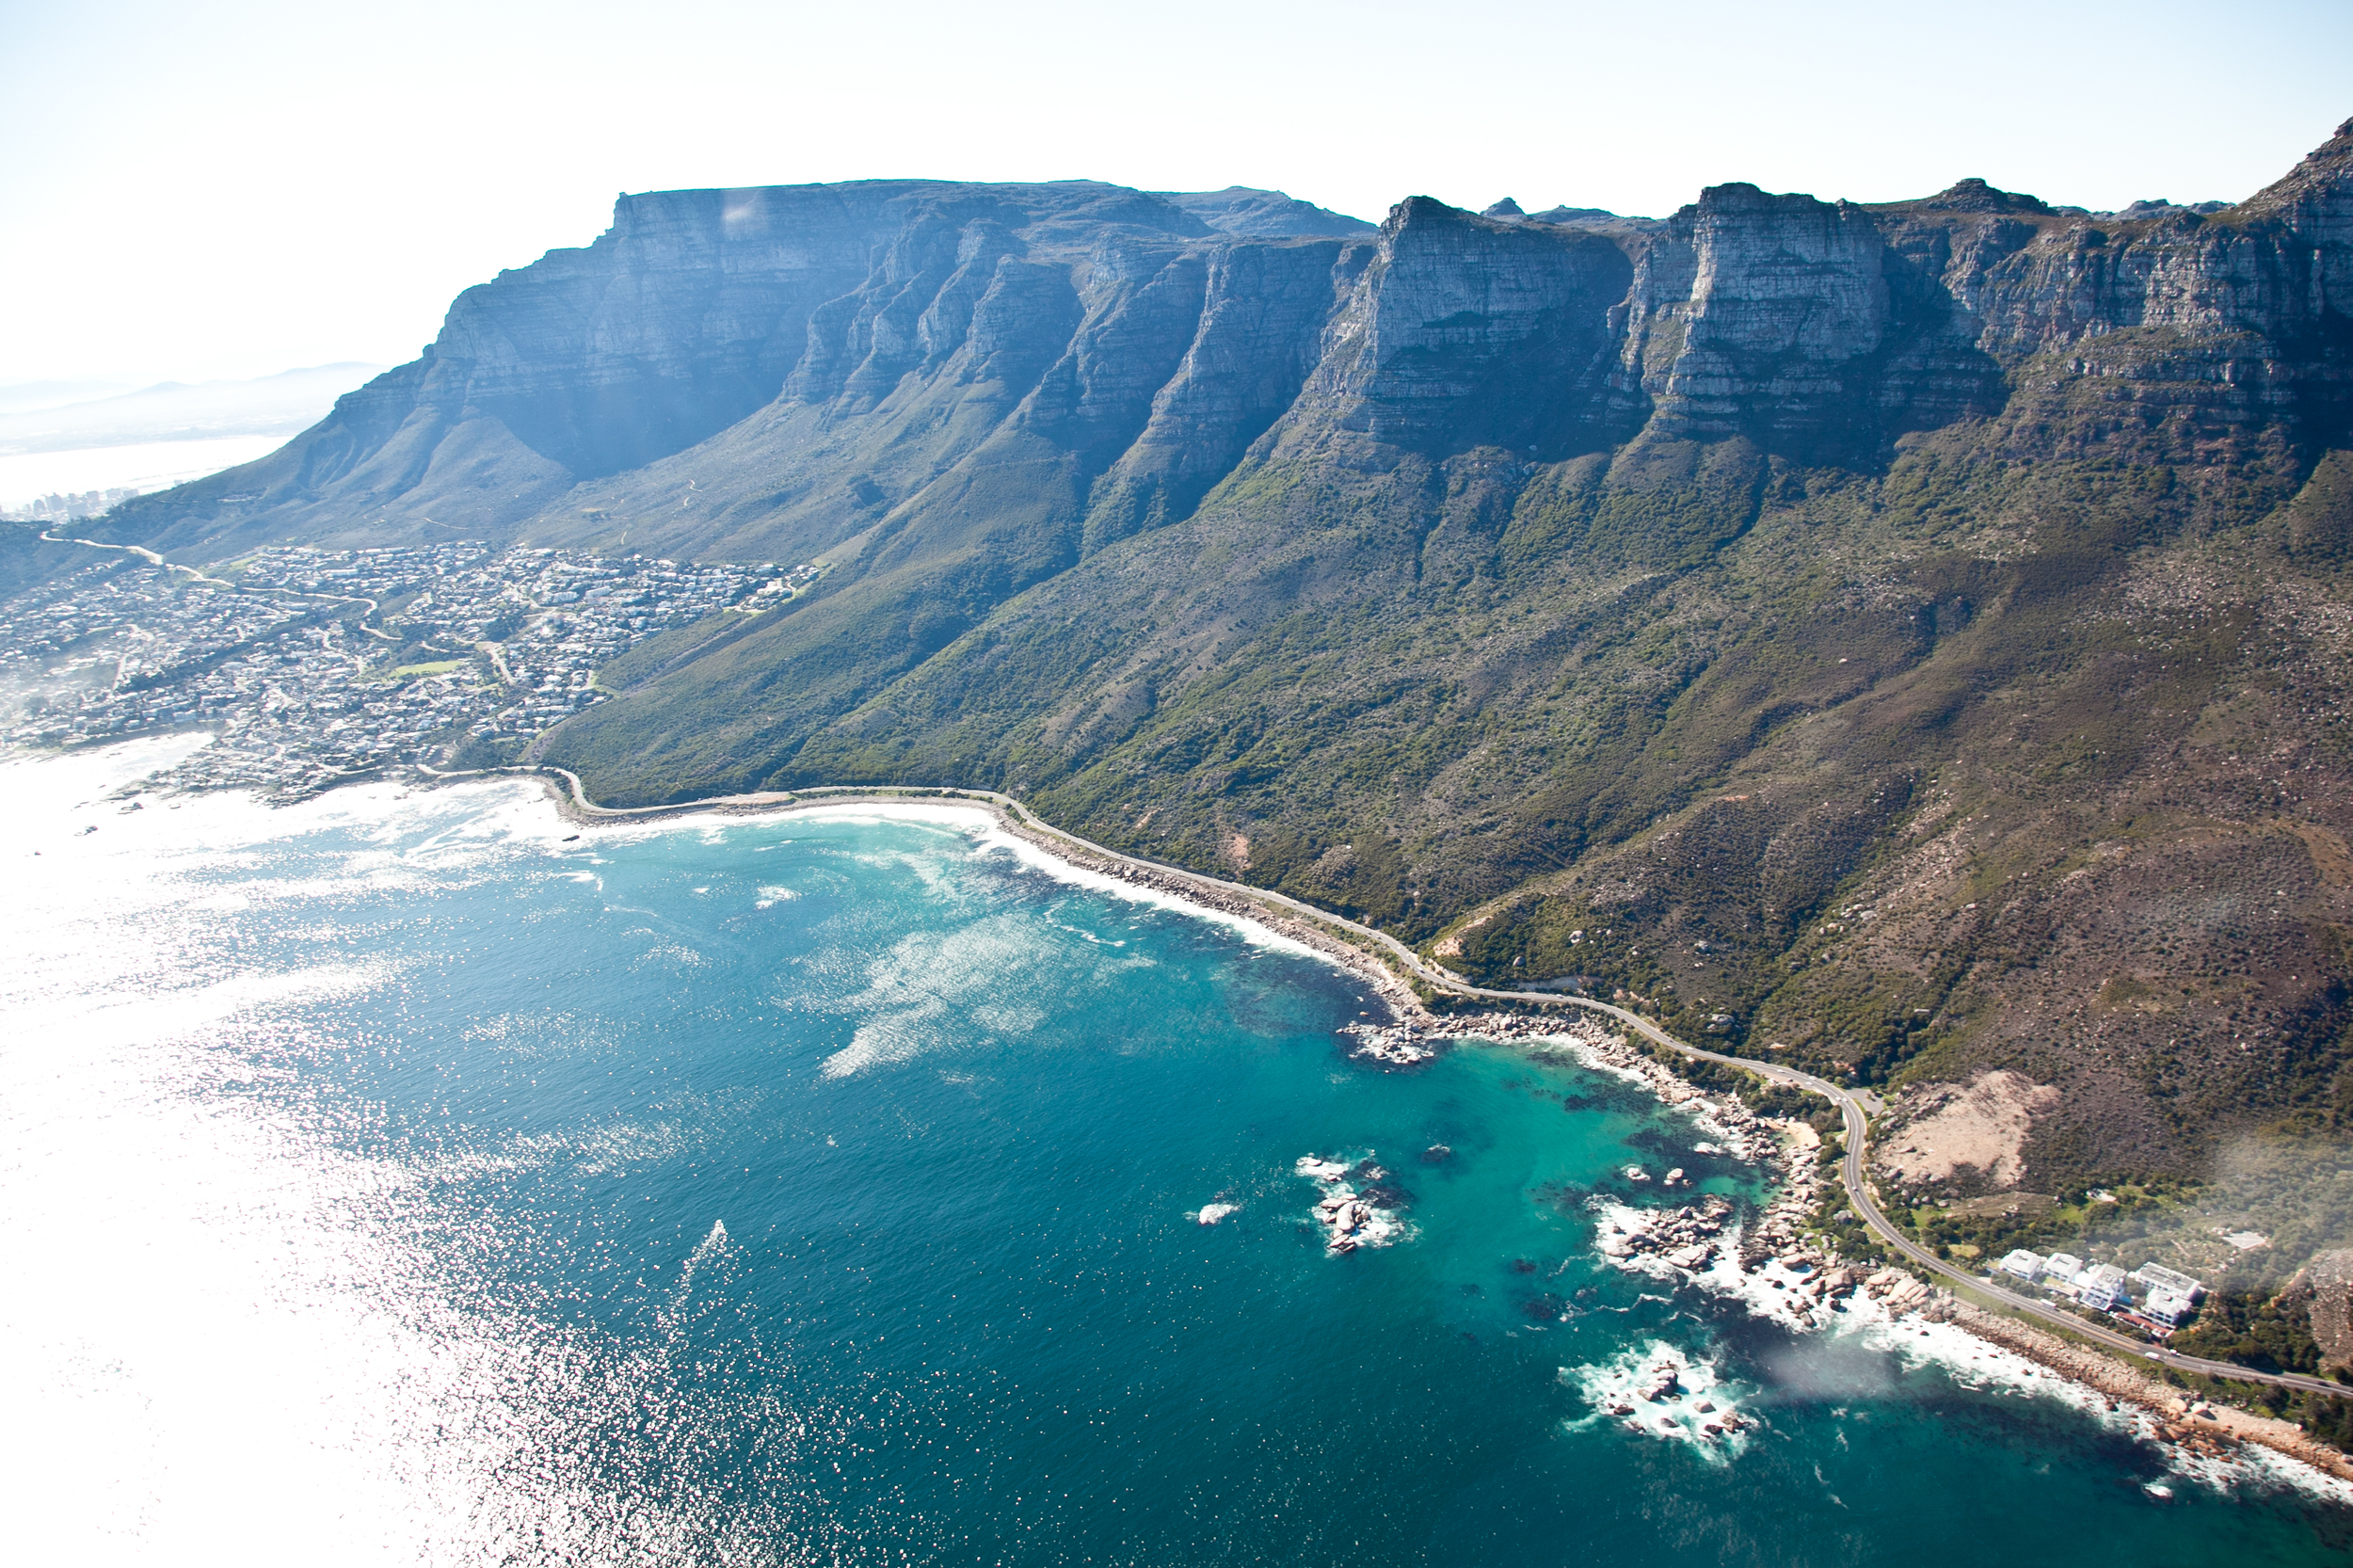 IMG_4806-cape-town-south-africa-helicopter-ride-trisa-taro